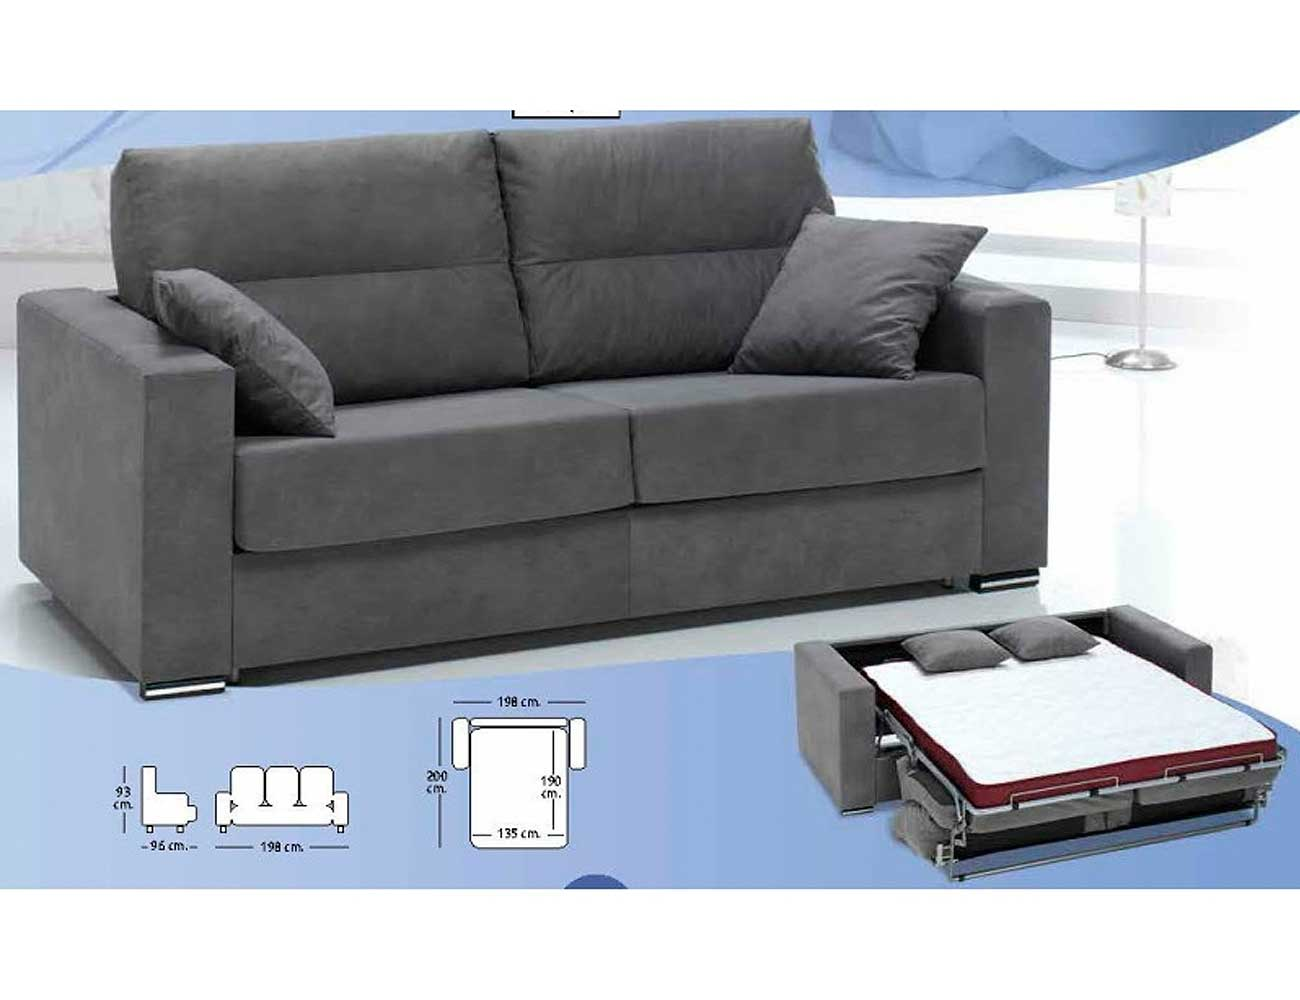 Sofa cama italiano 2